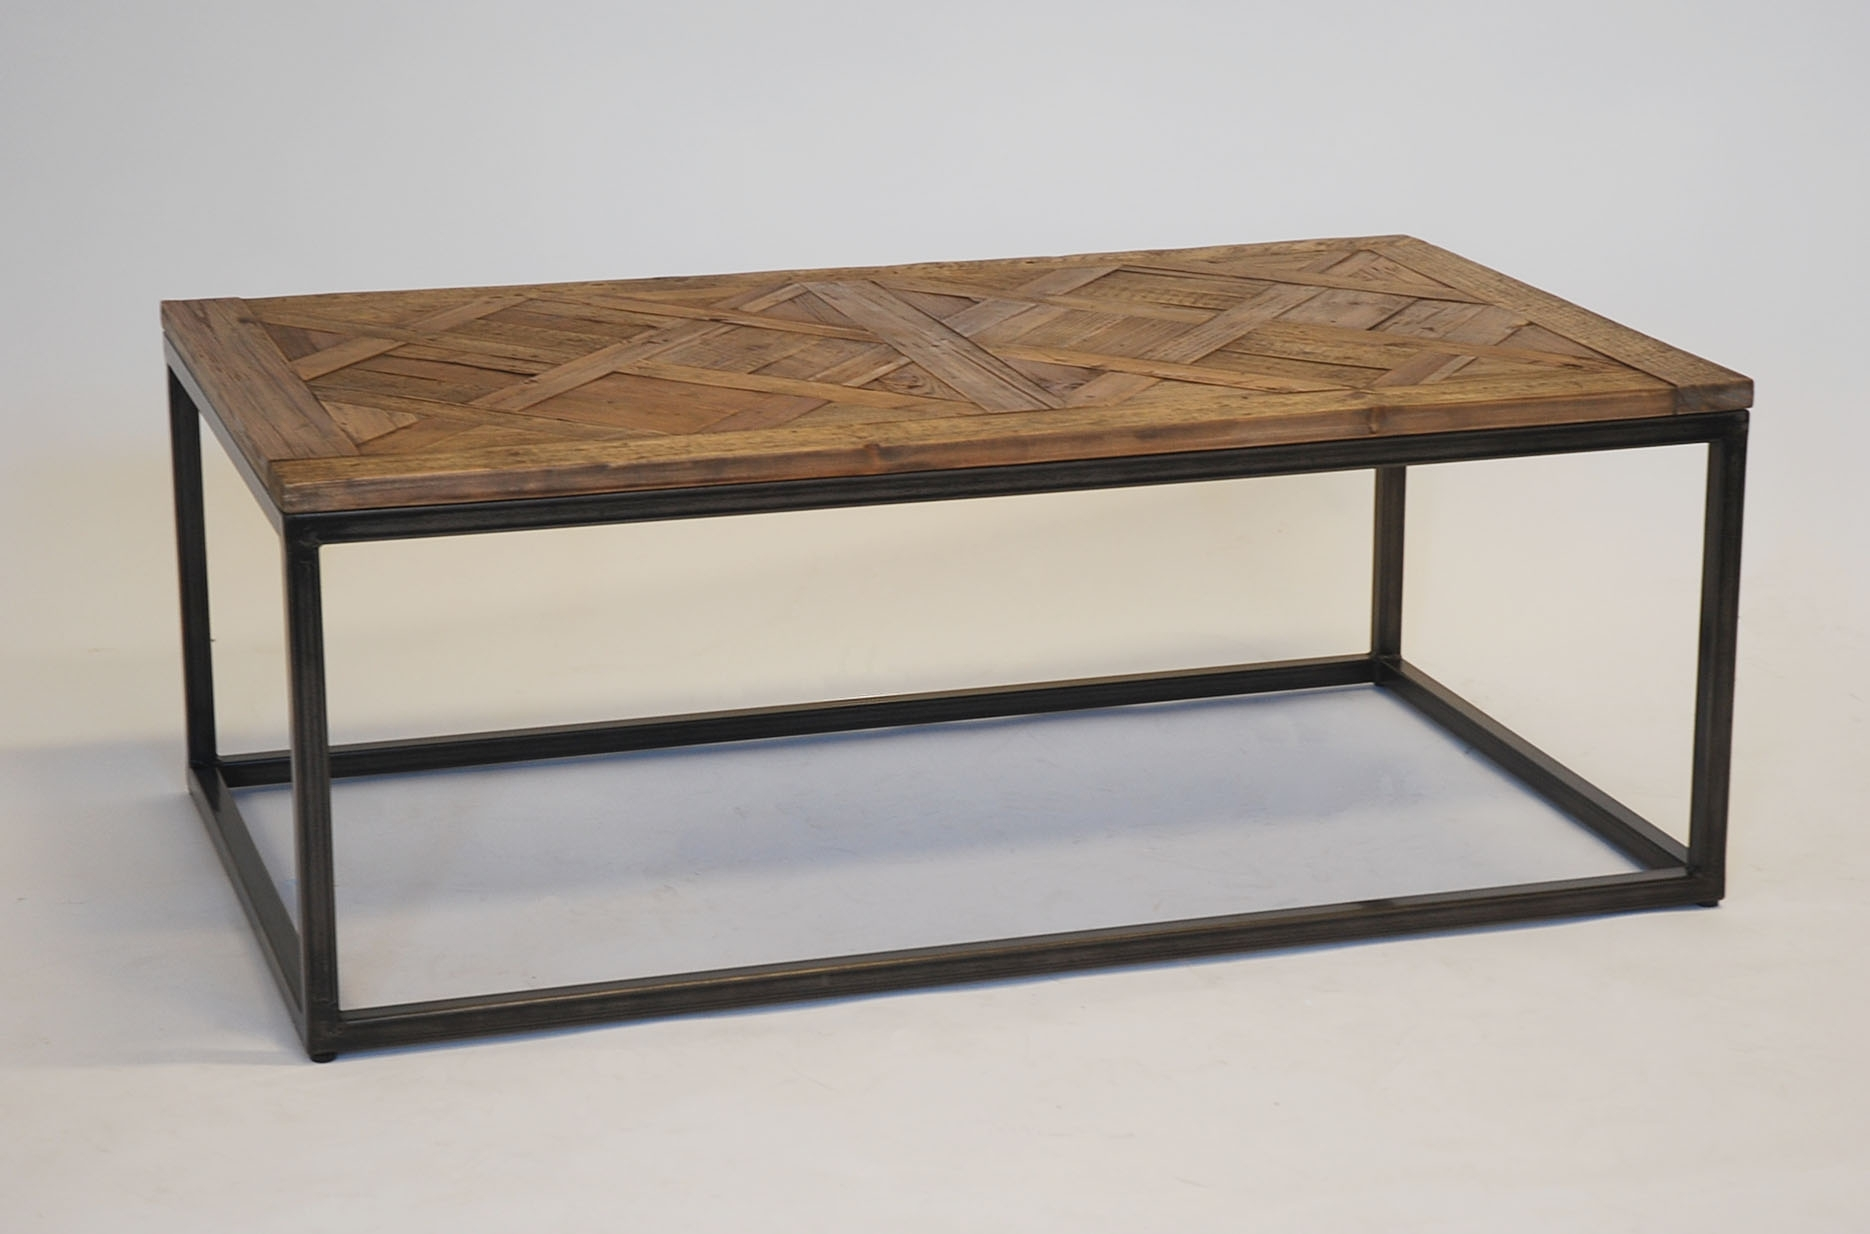 Oak Parquet Coffee Table | Hire & Rental Throughout Parquet Coffee Tables (View 5 of 30)